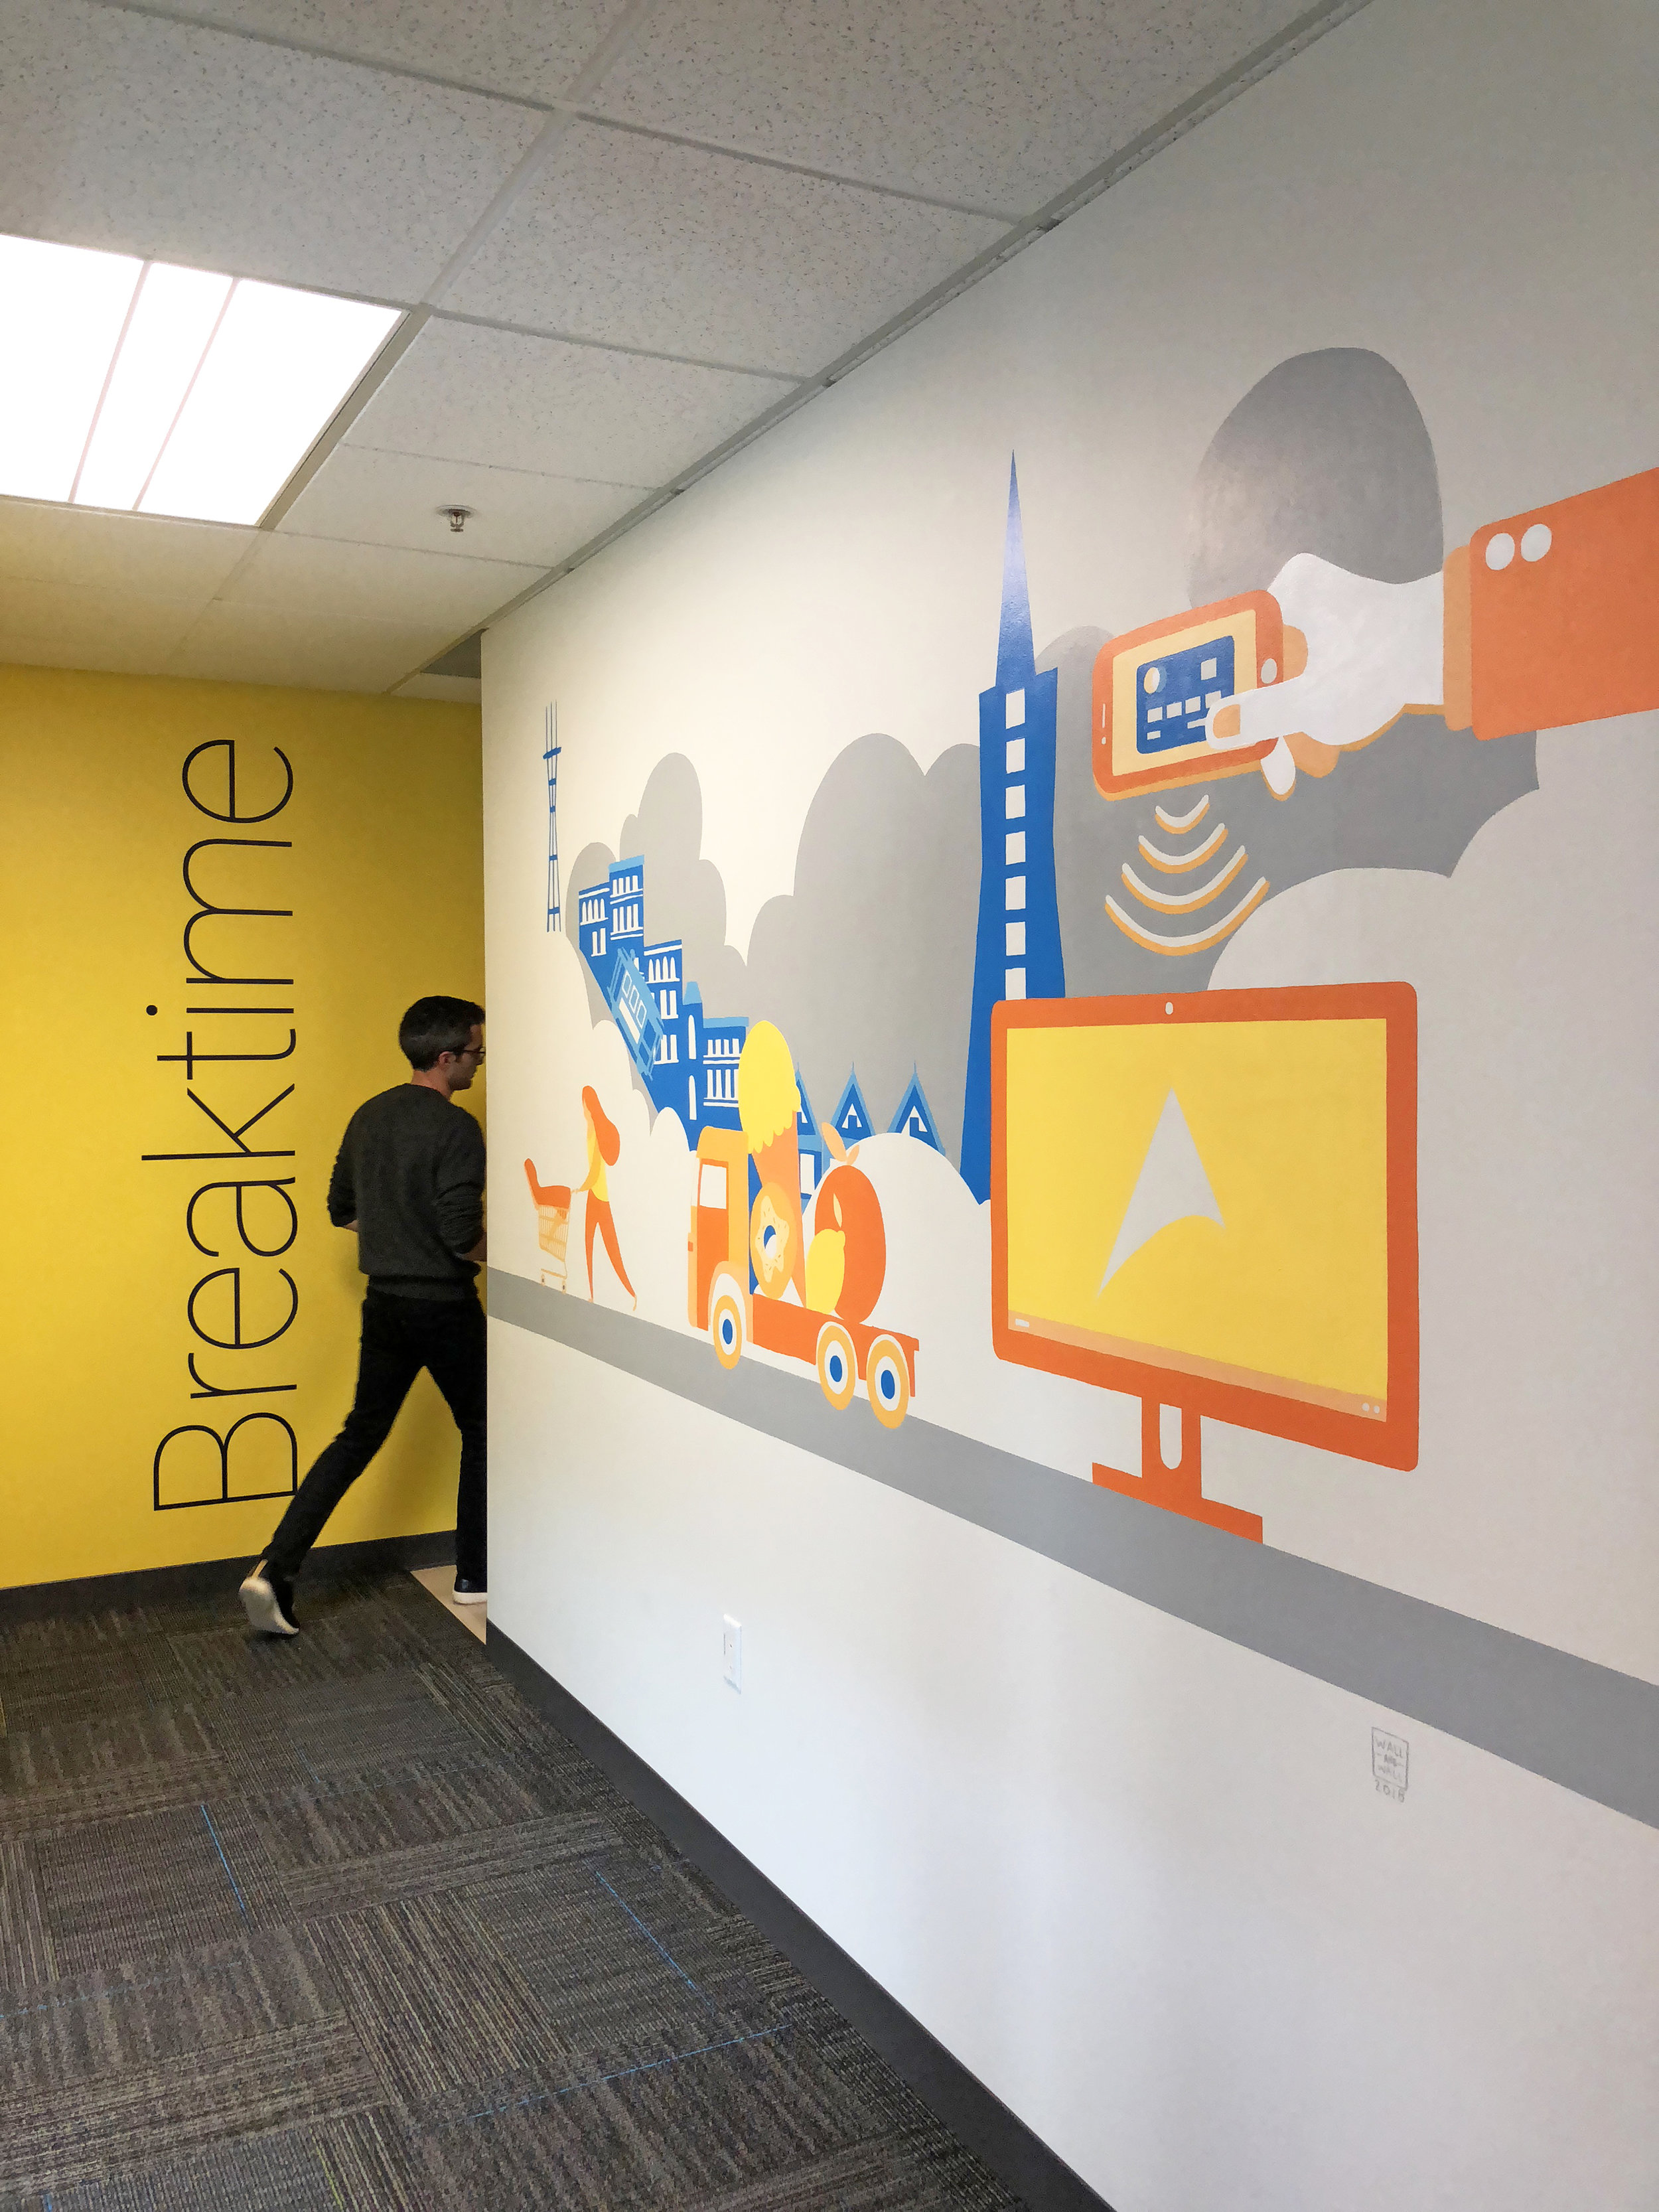 Office-commercial-mural-san-francisco-astound-wall-and-wall-mural-company_002.jpg